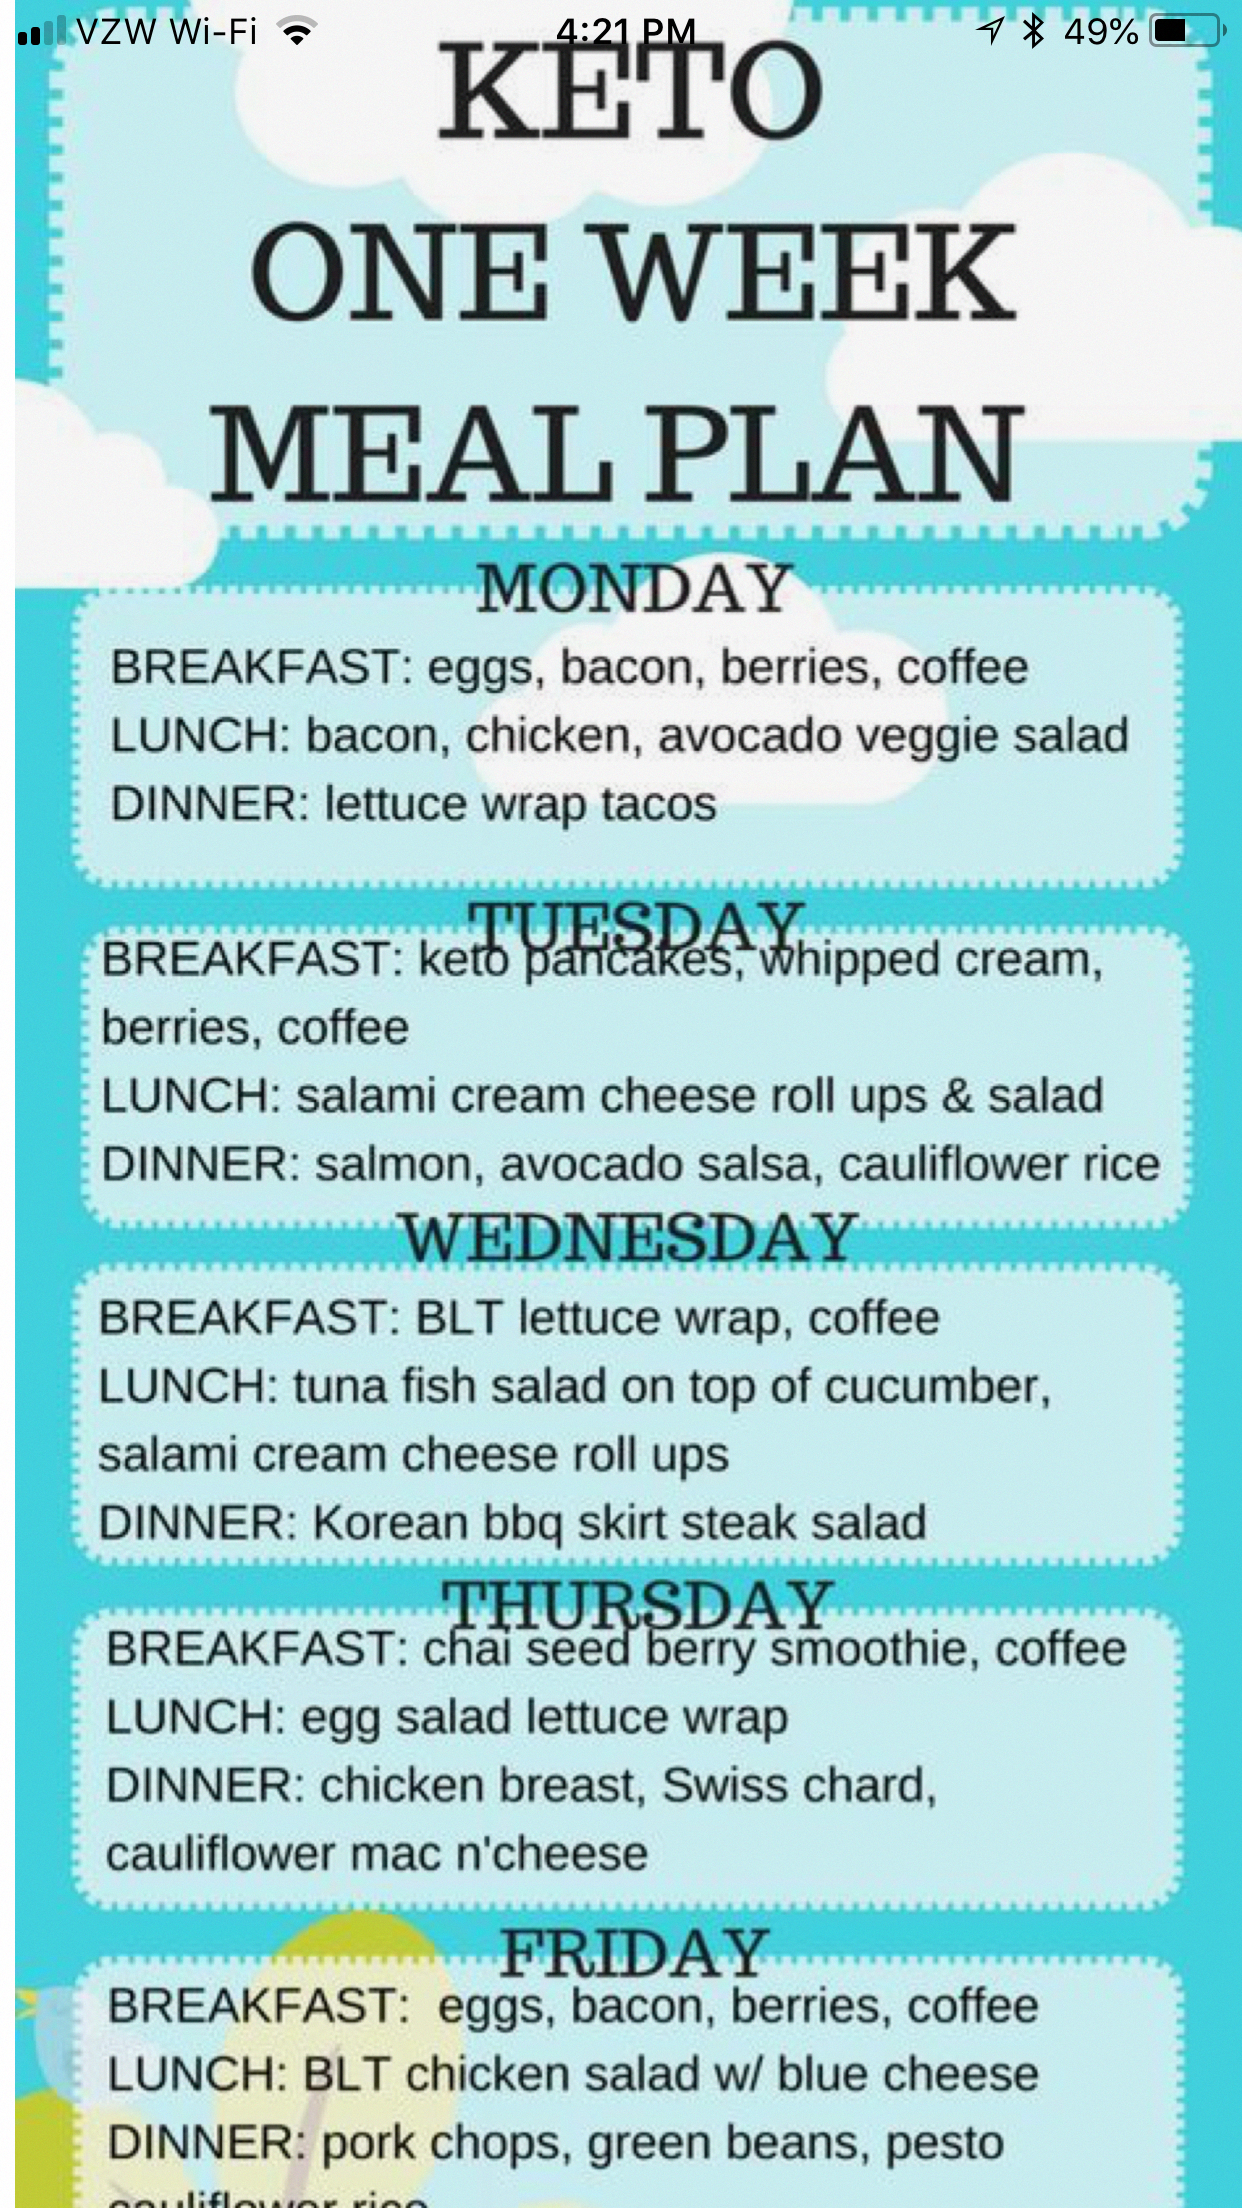 keto diet plan for busy life